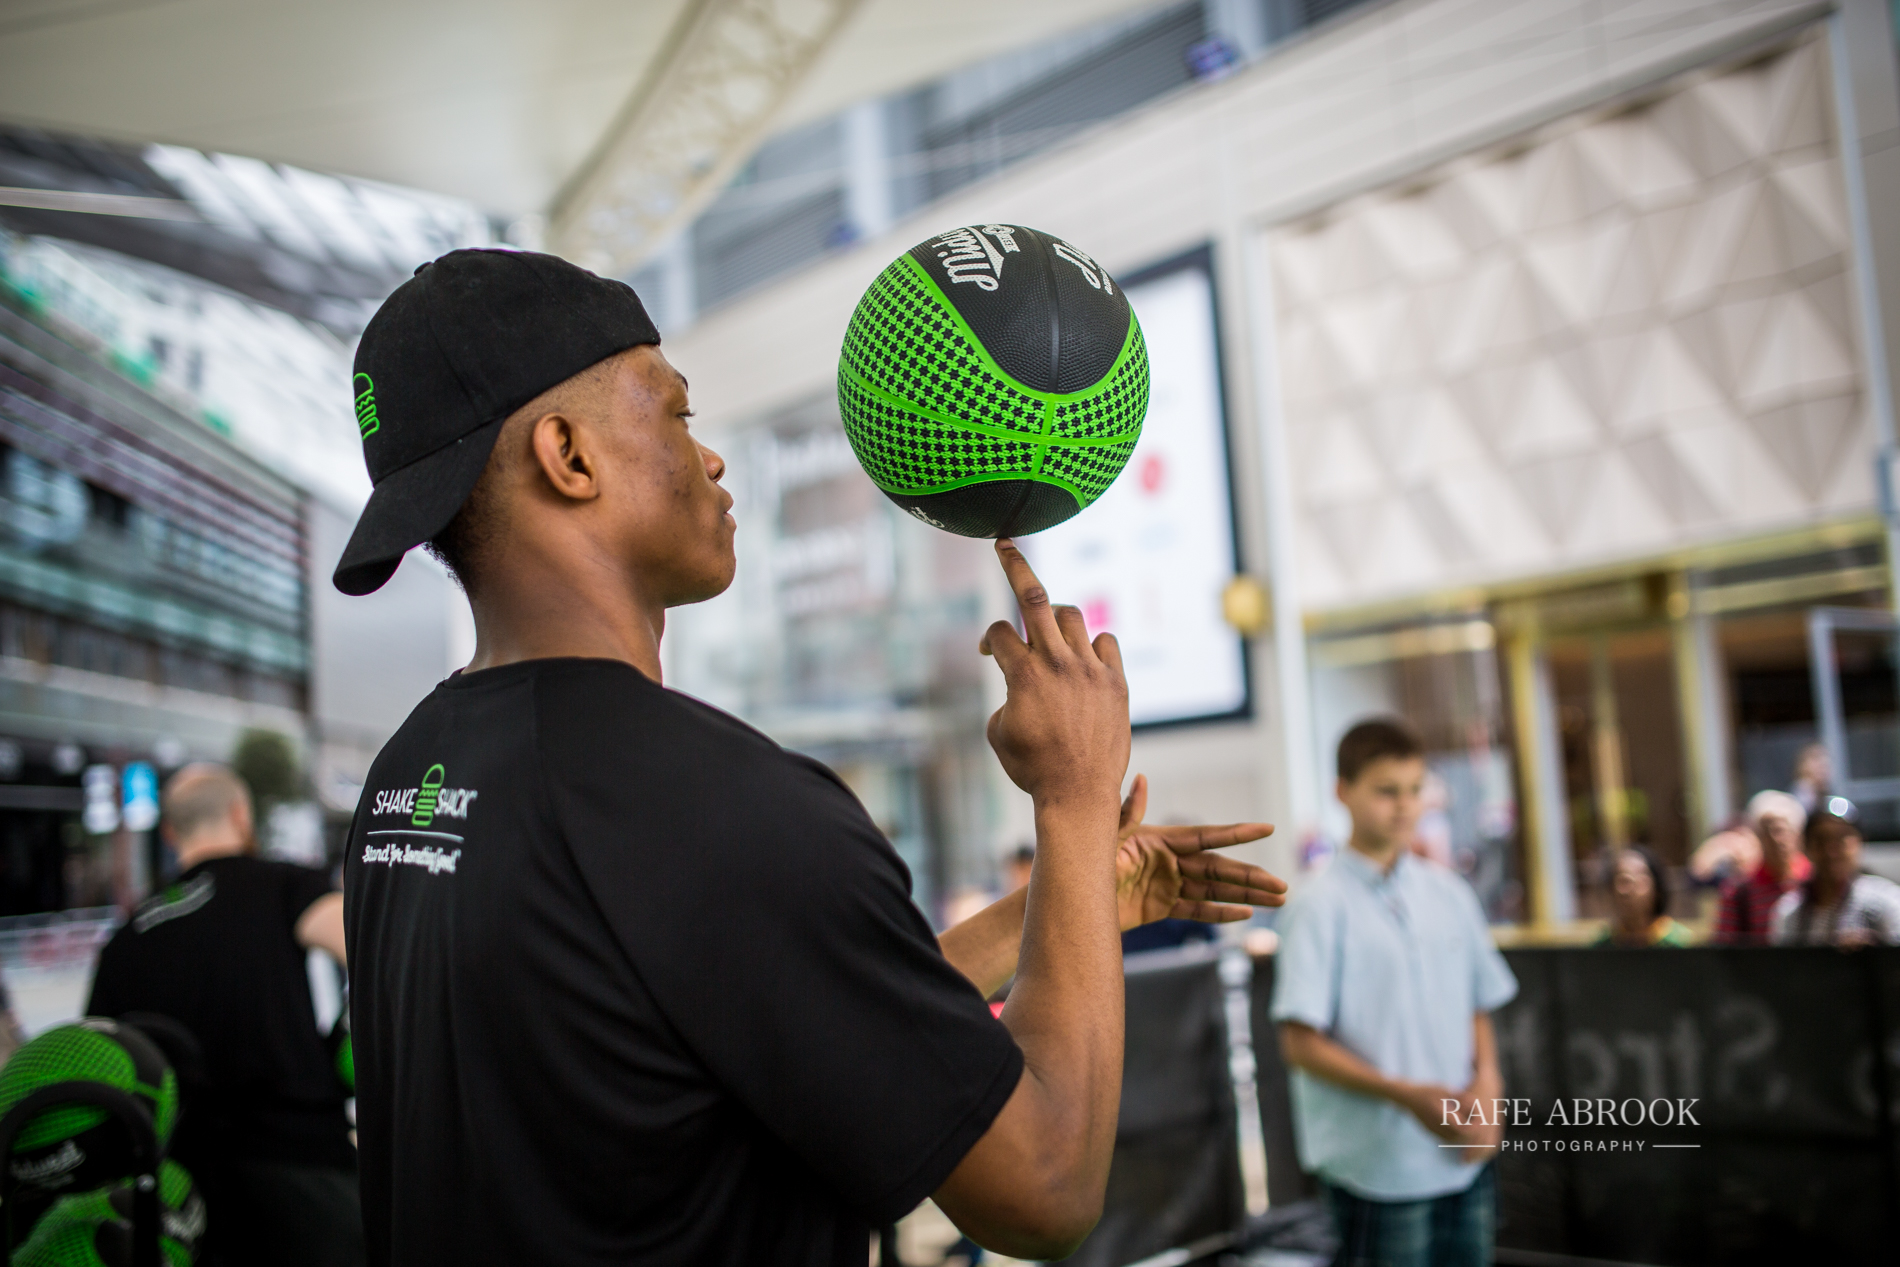 shake shack uk westfield stratford london experiential basketball-1024.jpg